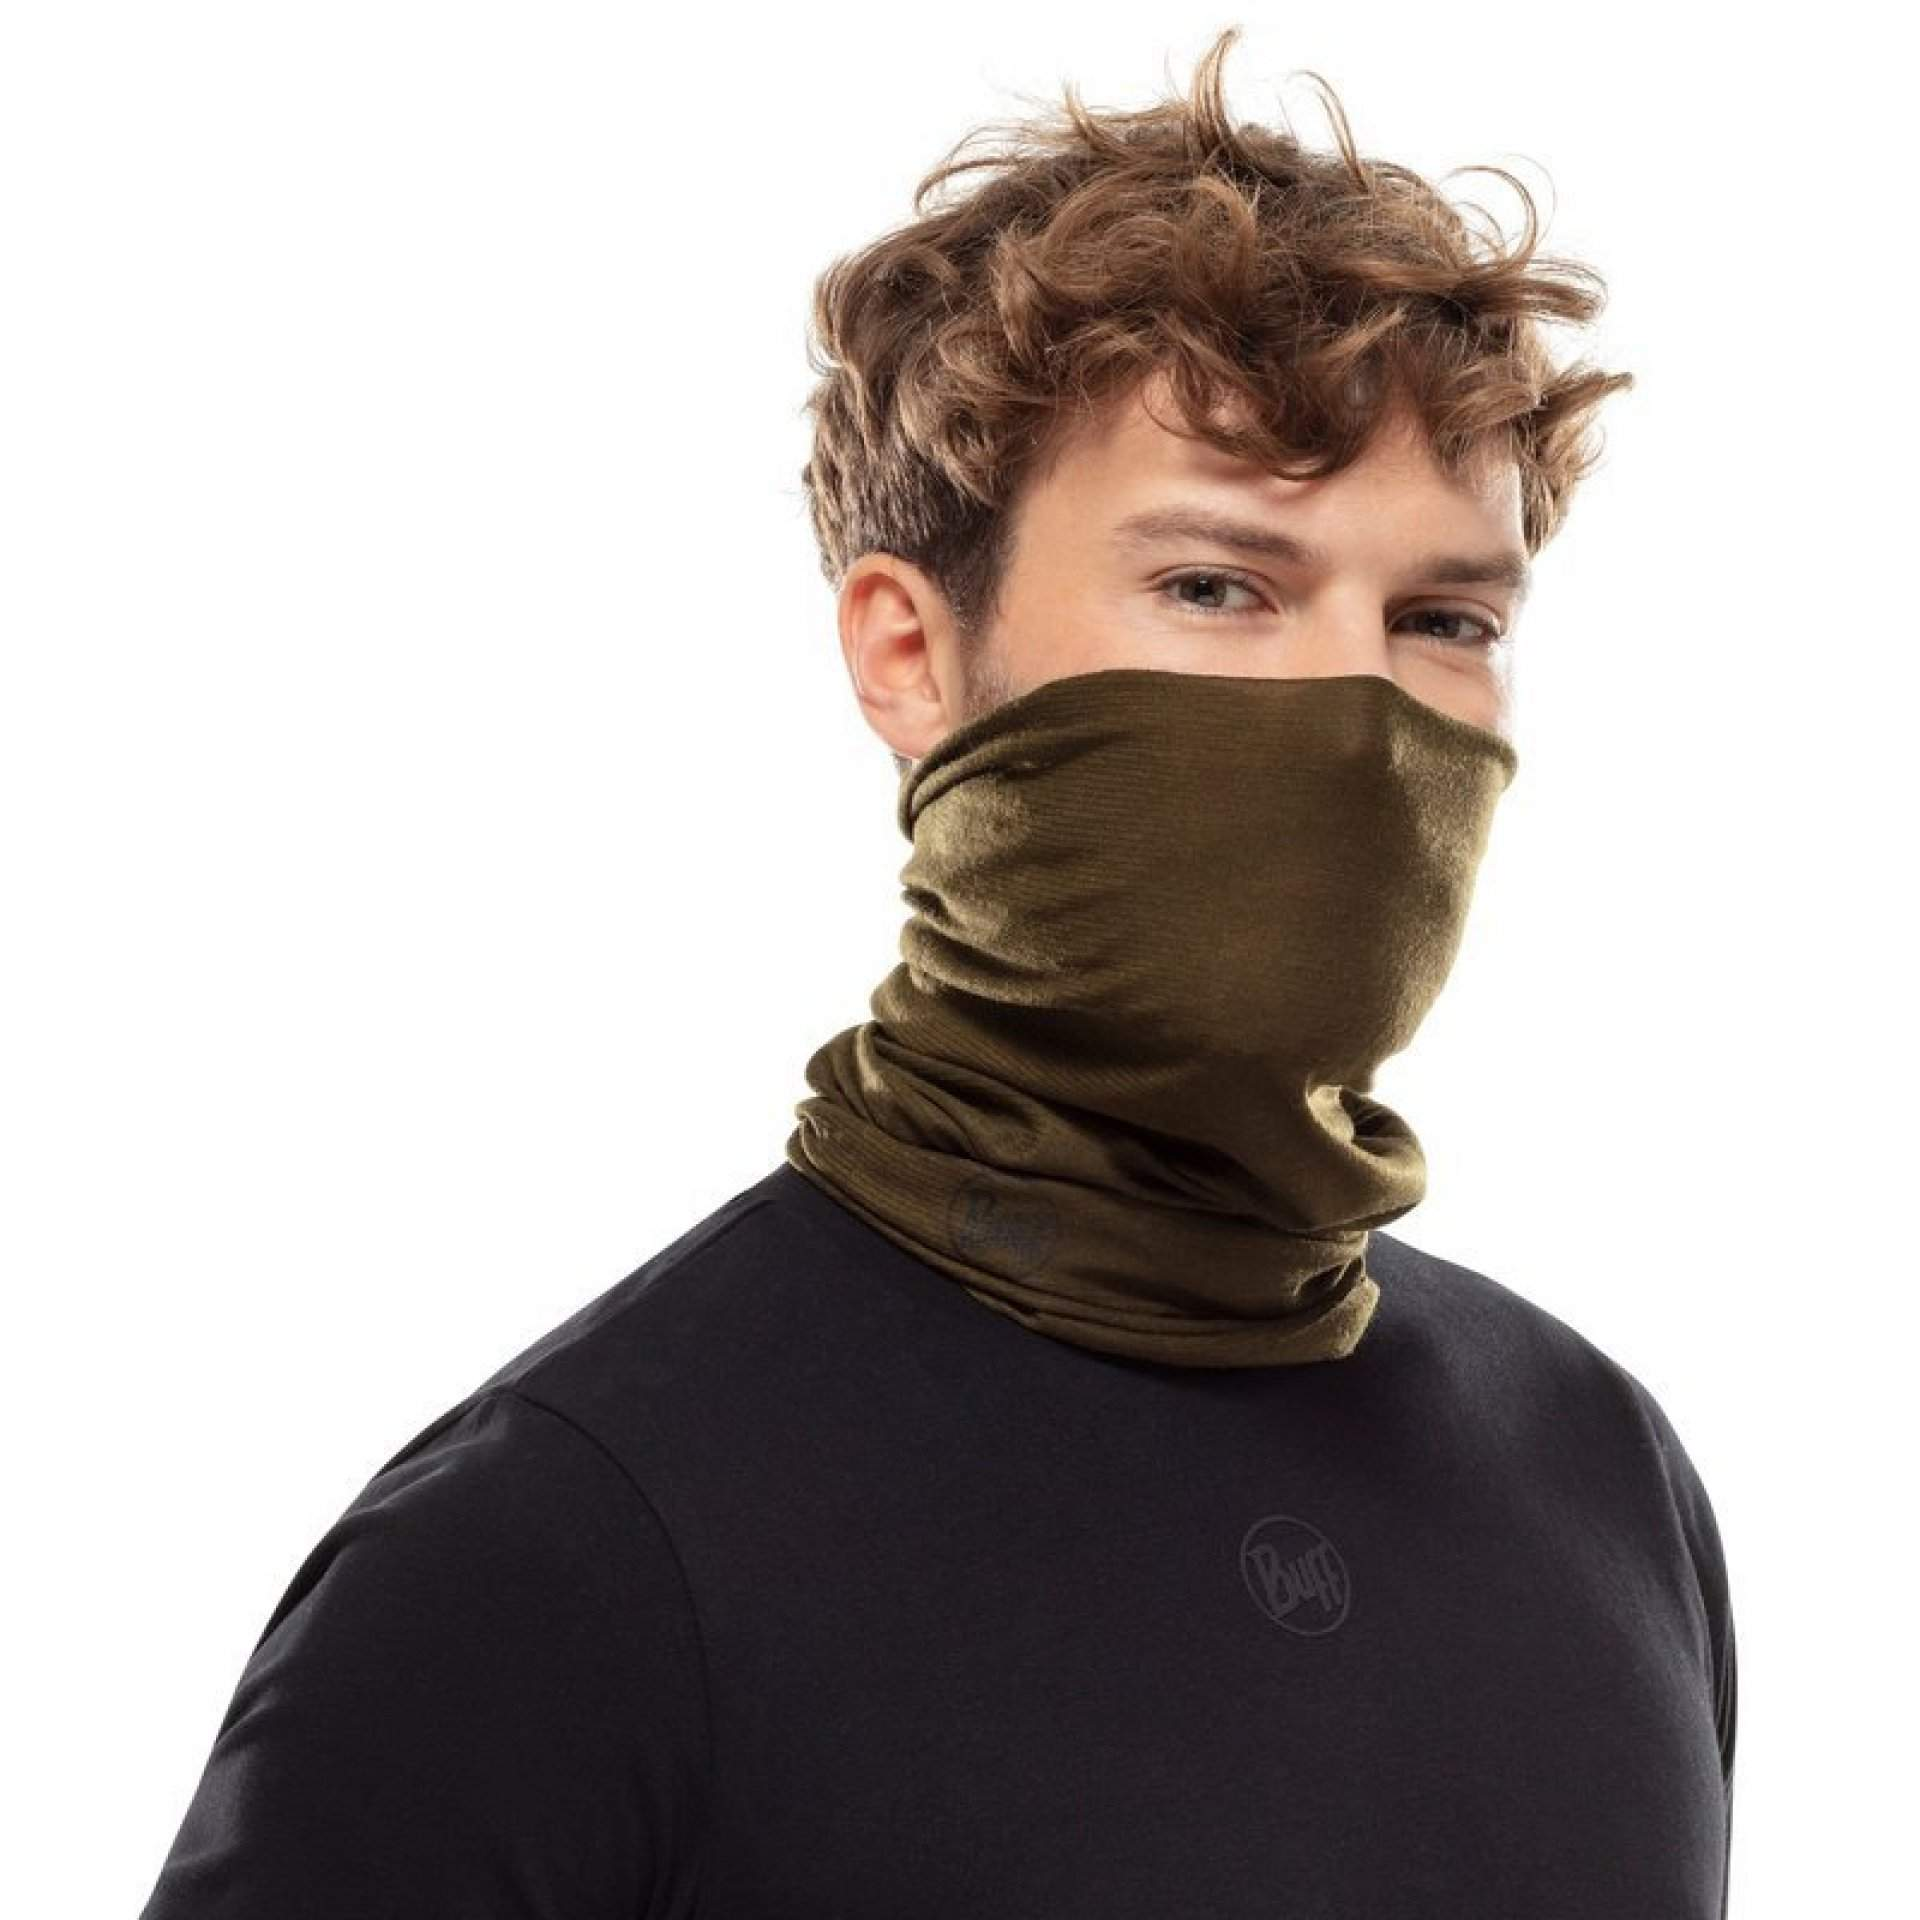 CHUSTA BUFF COOLNET UV+ INSECT SHIELD SOLID MILITARY NA TWARZY